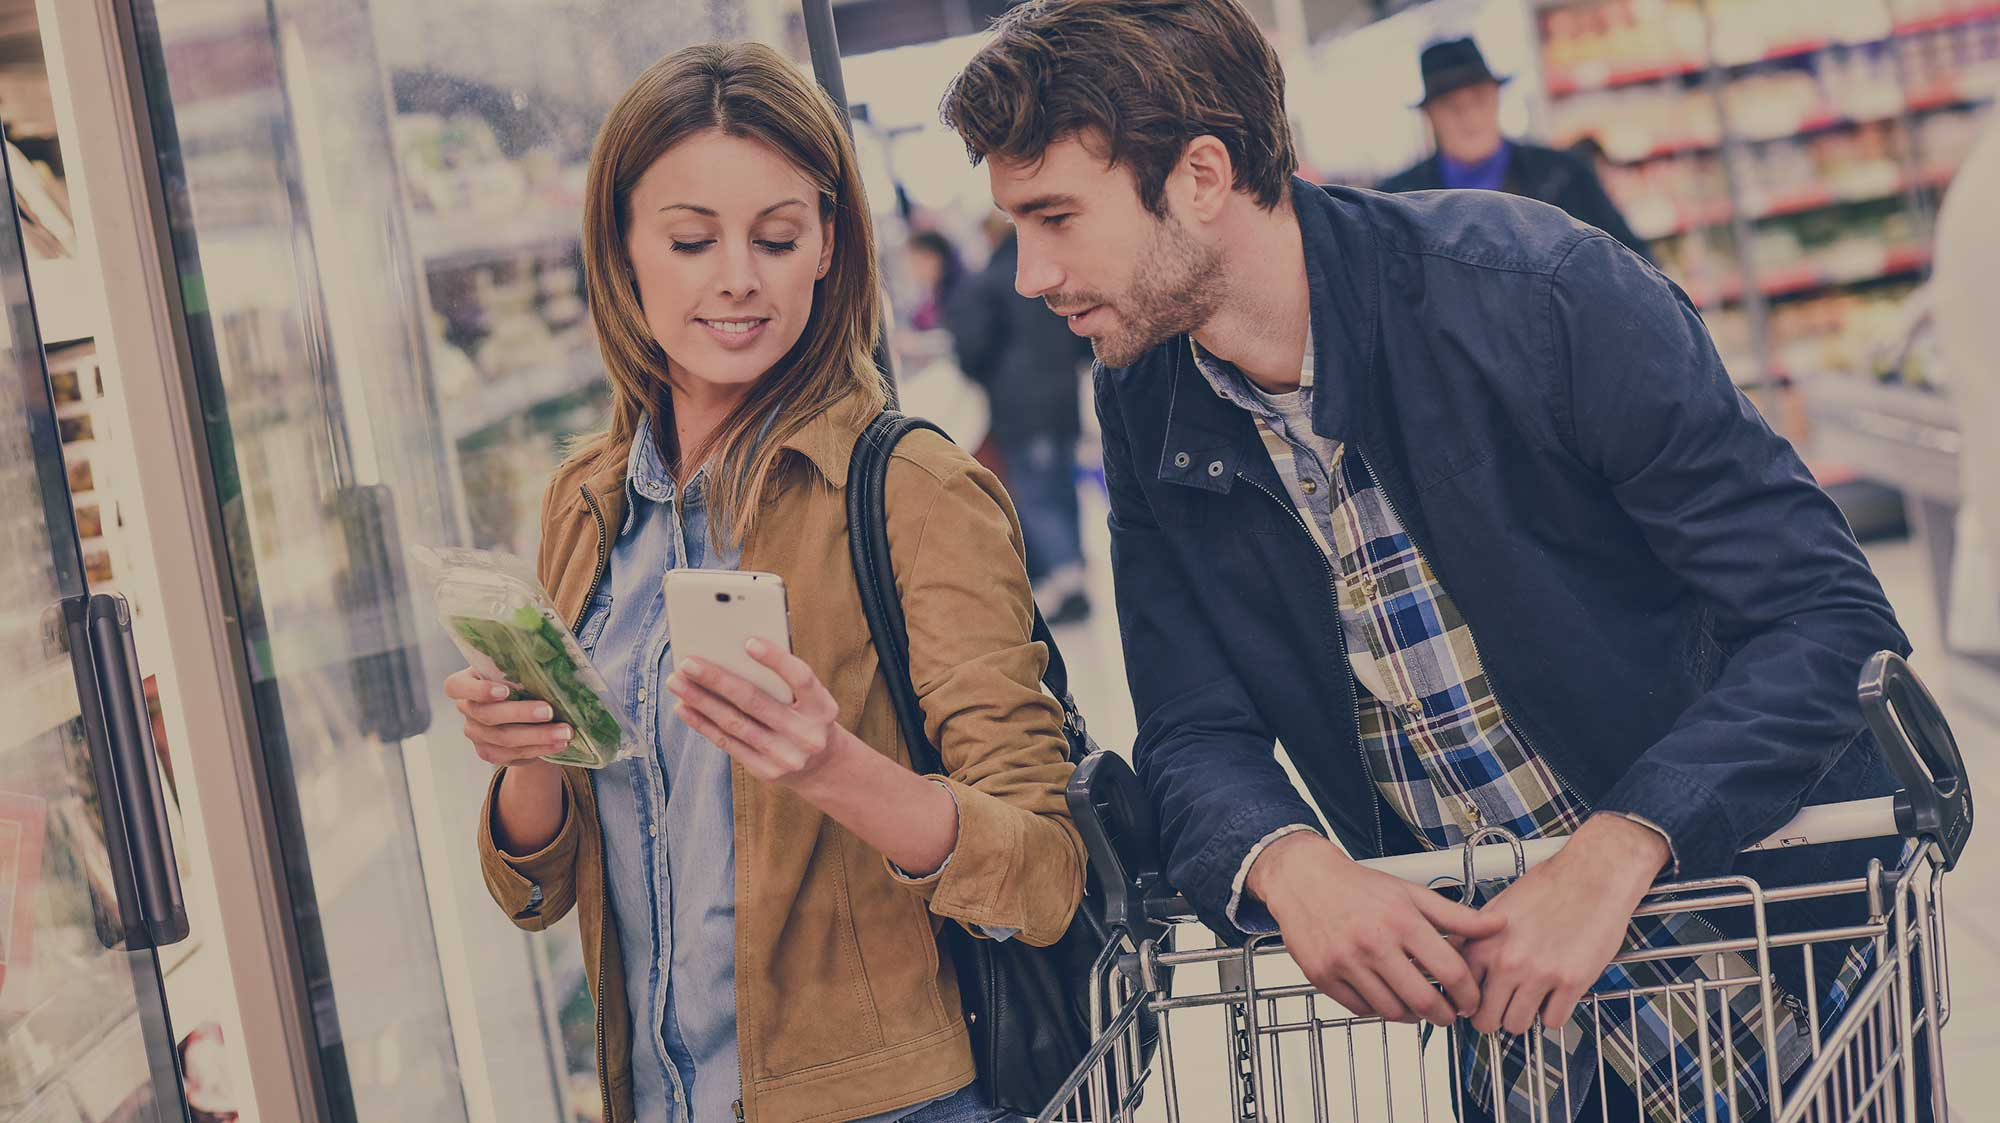 How Retail Wi-Fi Networks are Transforming the Brick & Mortar Experience [Infographic]